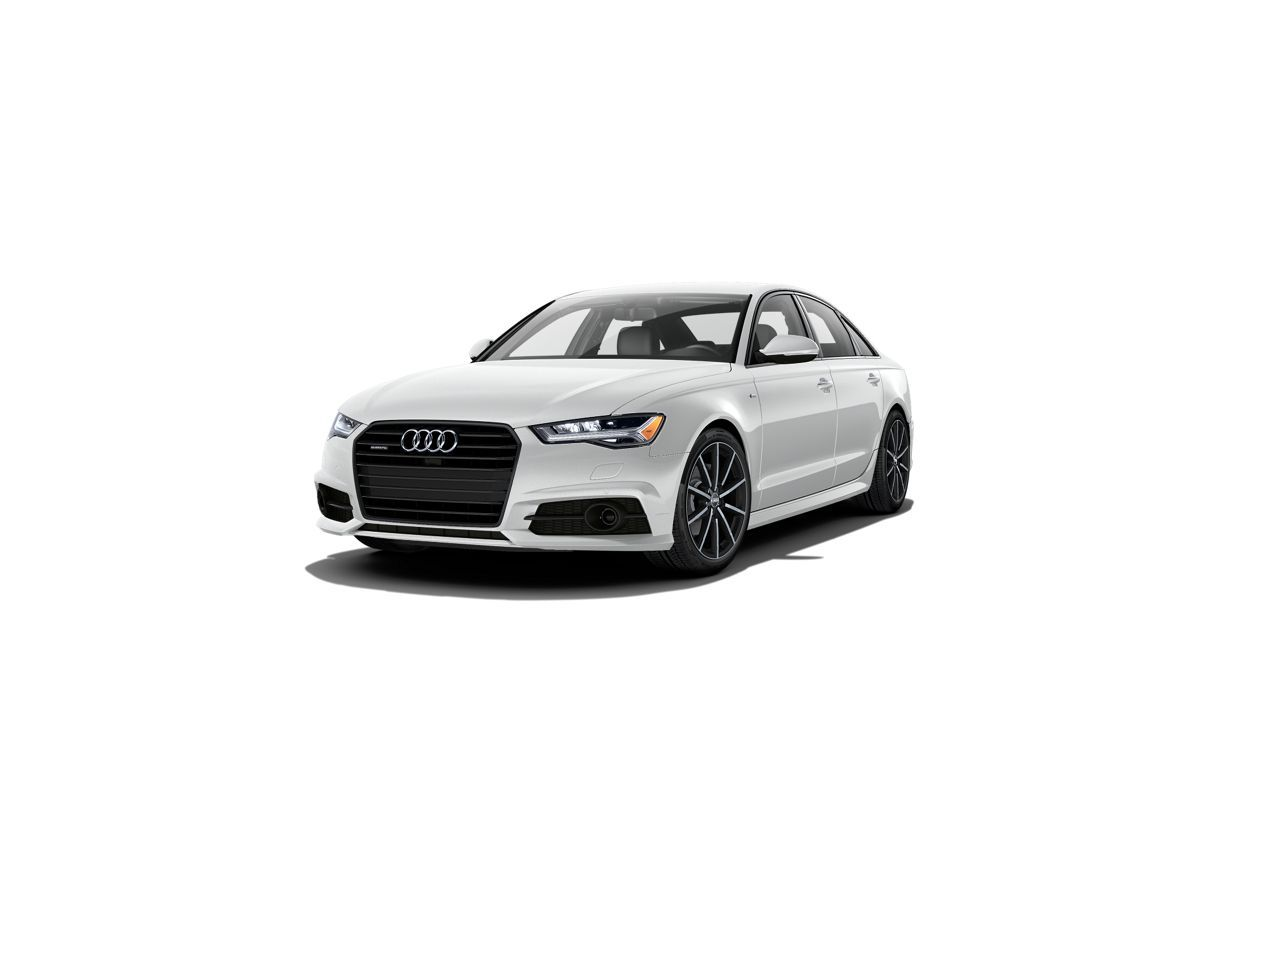 Audi Build Your Own >> Build Your Own Audi A6 Car Configurator Audi Usa Gift